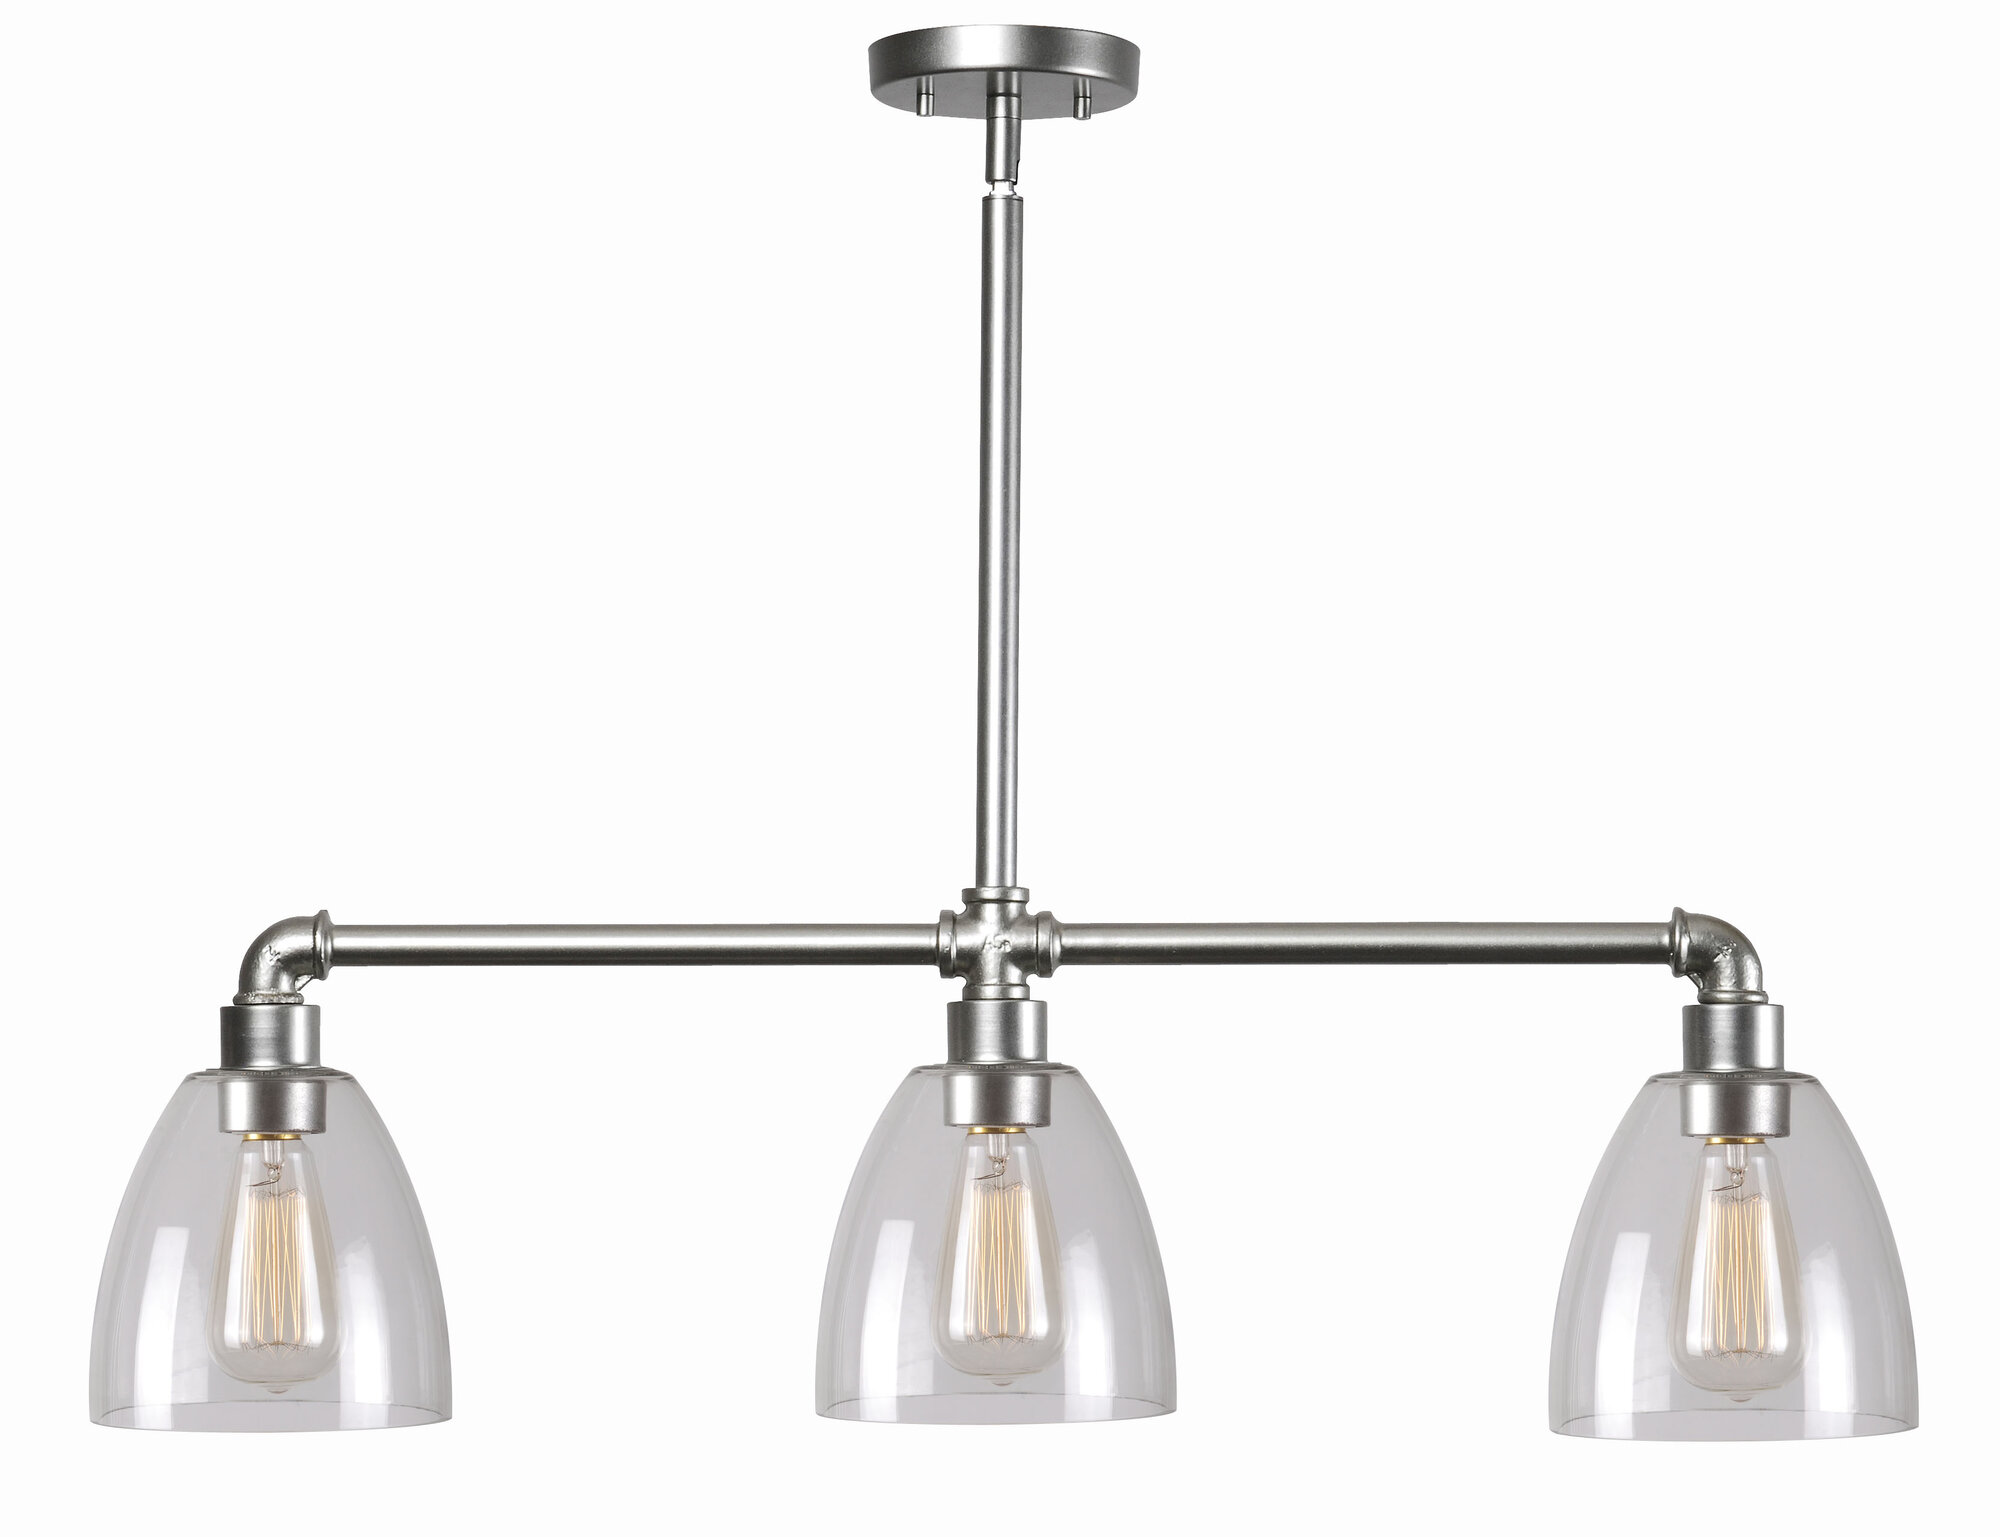 Wildon home industrial fitter 3 light kitchen island for Kitchen pendant lighting island